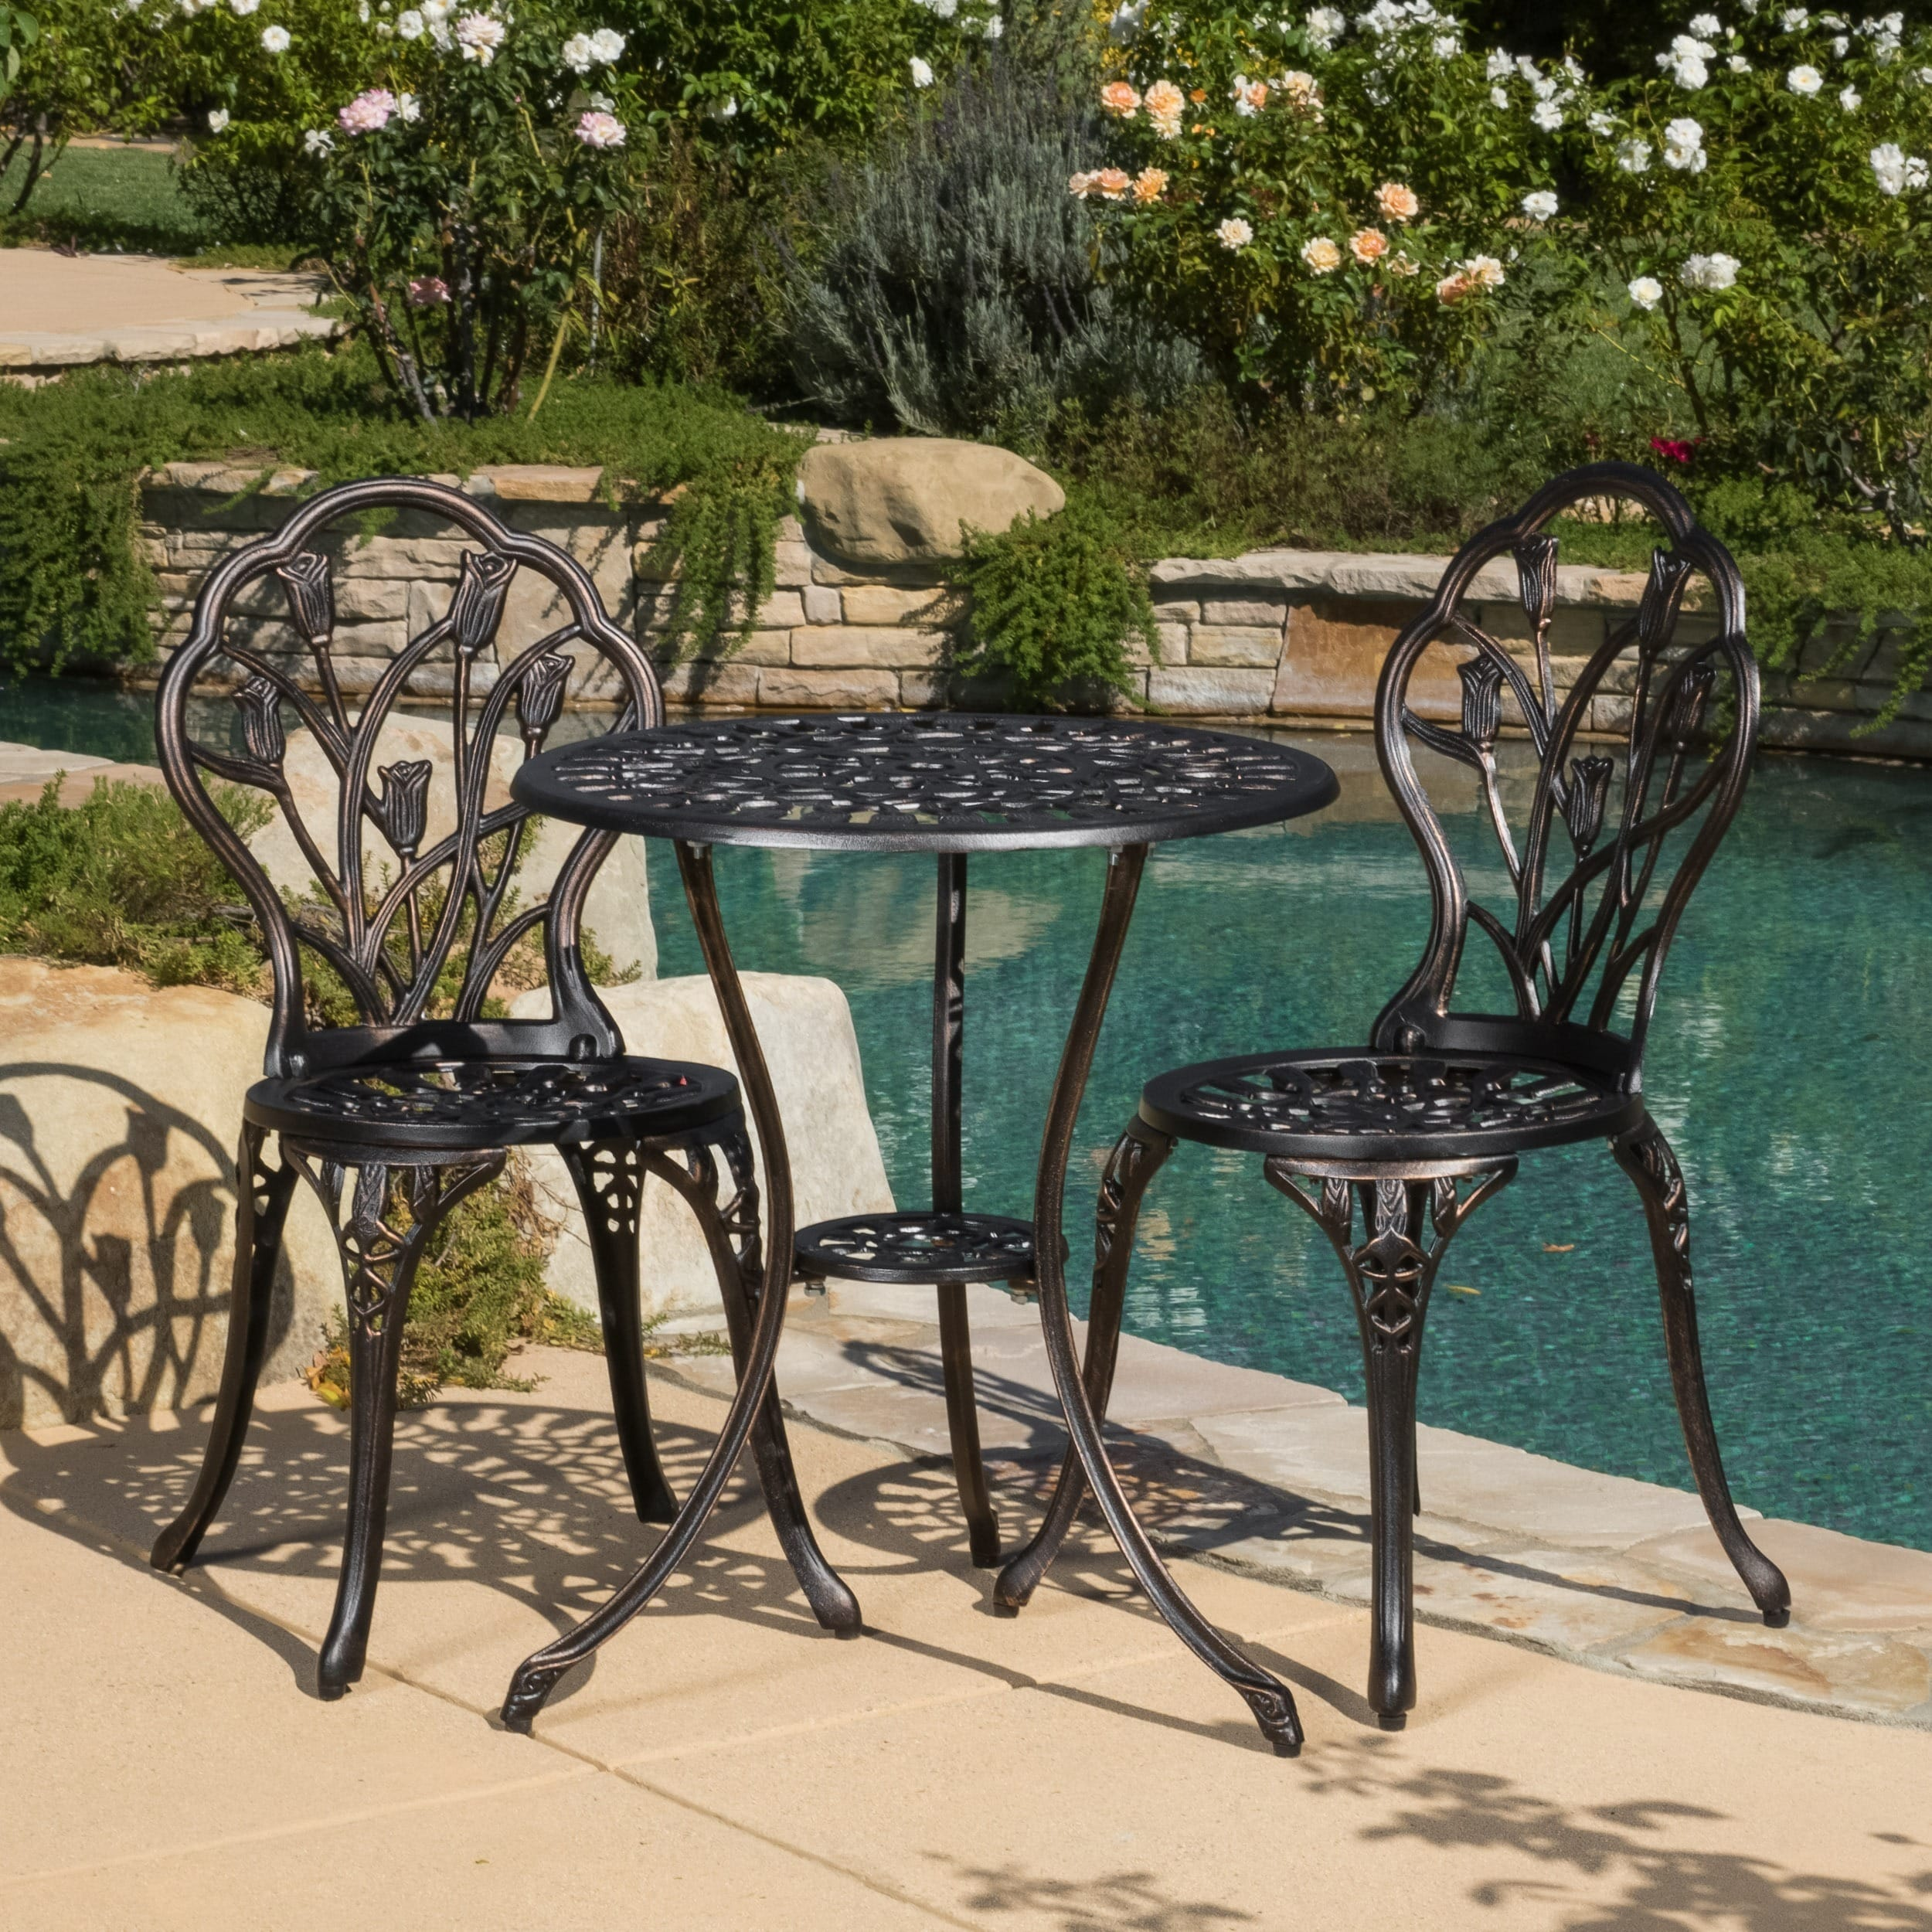 Delicieux Shop Nassau Cast Aluminum Outdoor Bistro Furniture Set By Christopher  Knight Home   Free Shipping Today   Overstock.com   4787251